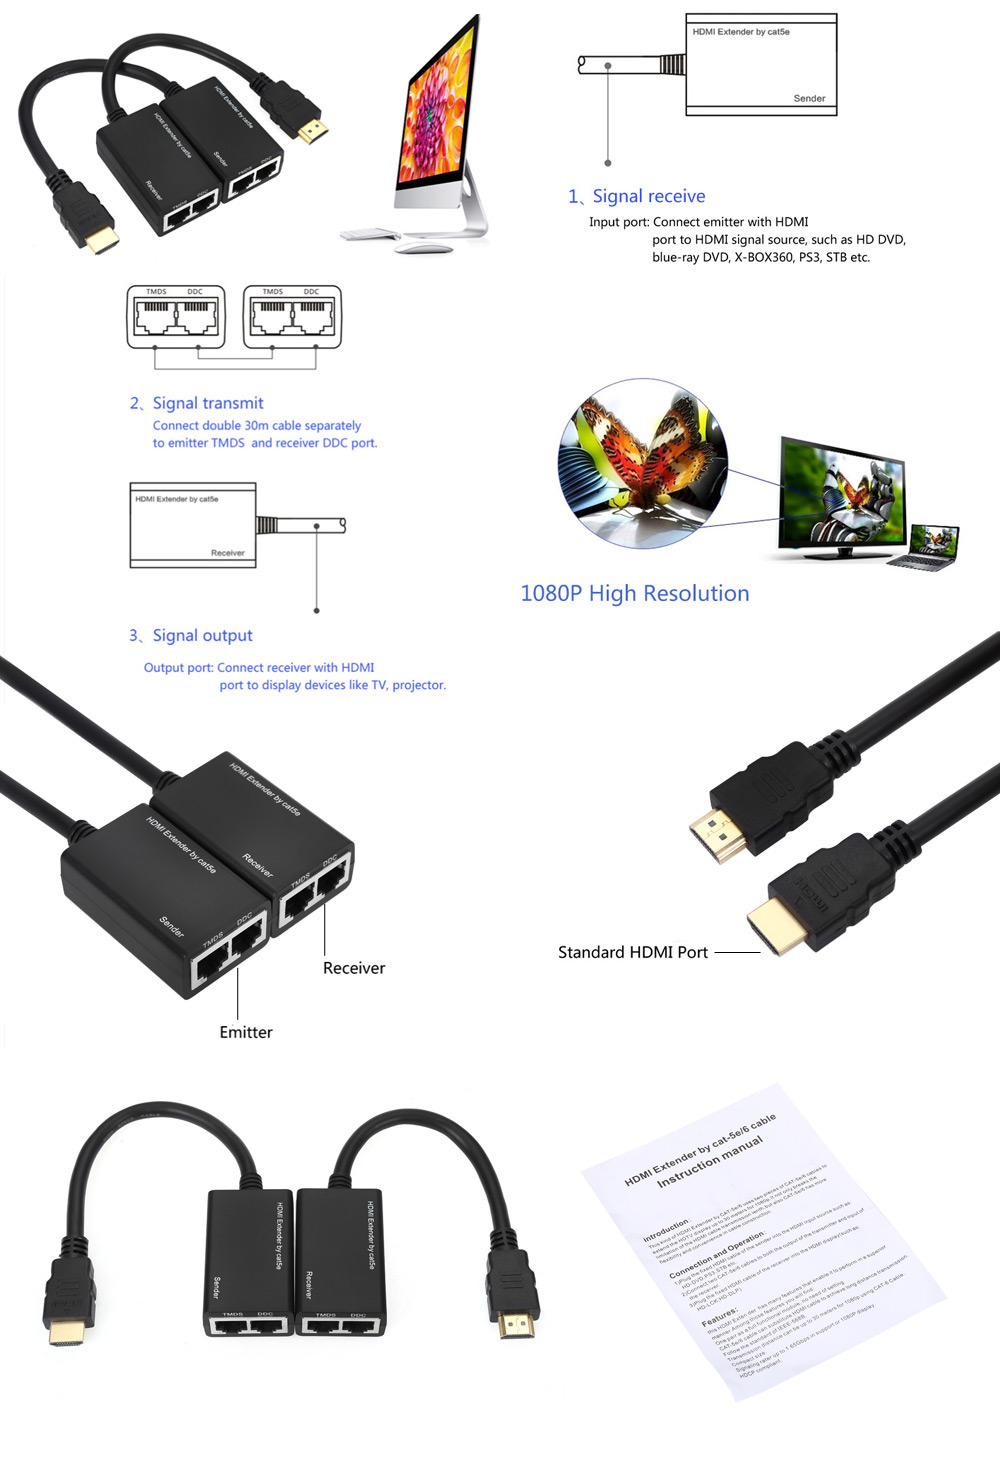 HDMI Extender Sender / Receiver Cable Set for Signal Amplify